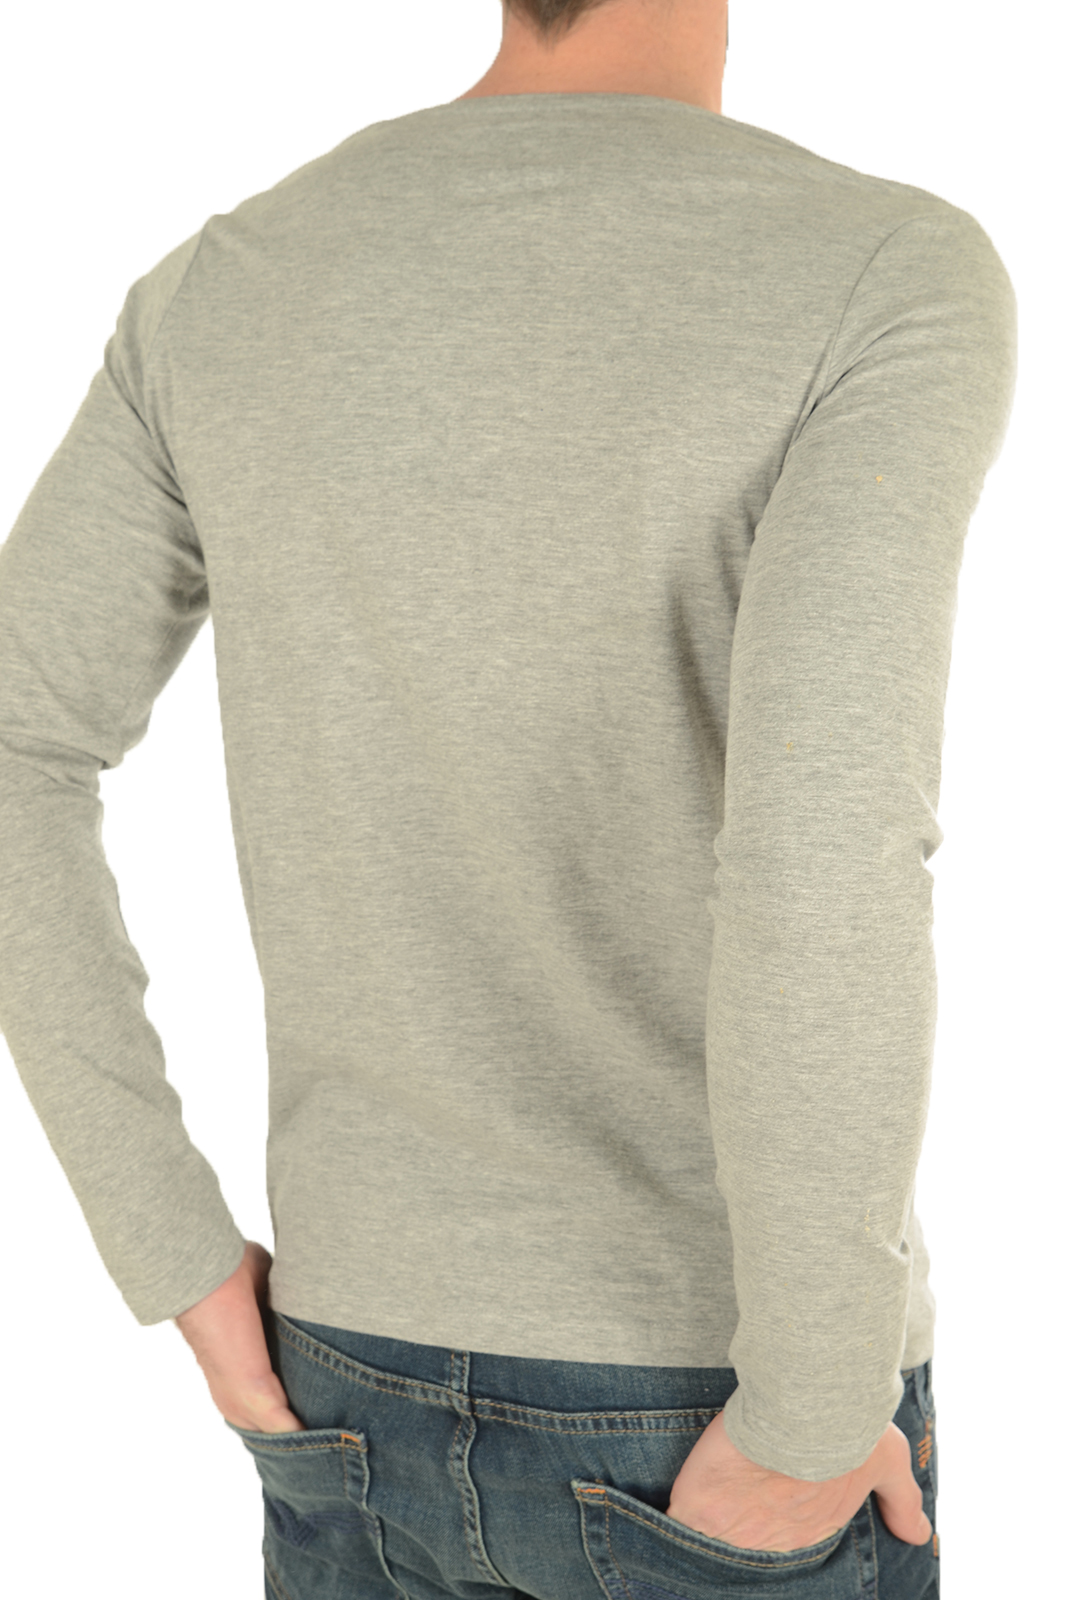 T-S manches longues  Biaggio jeans LAKANIL GREY MELANGE